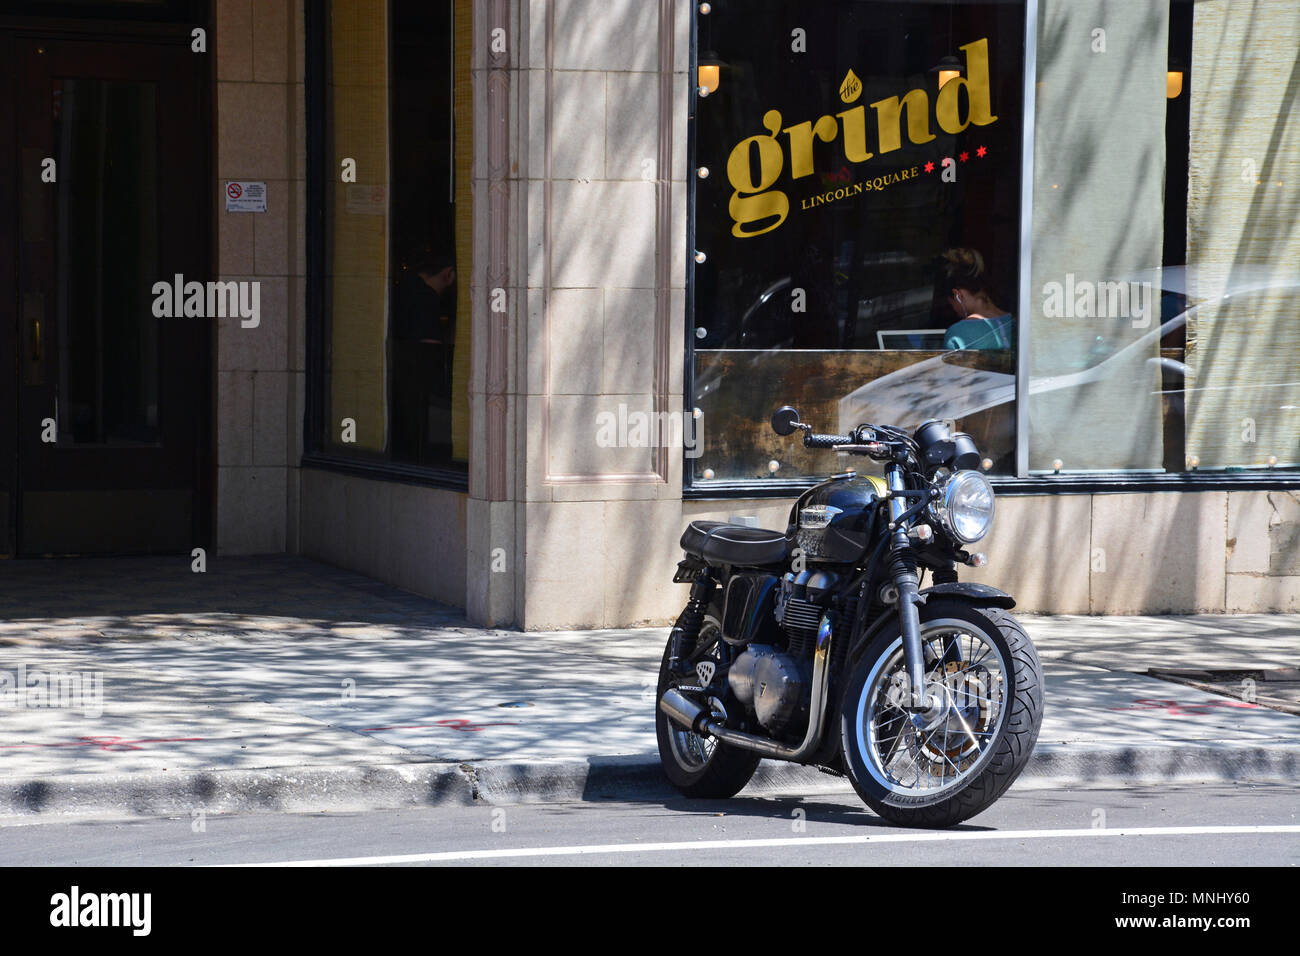 A Black Triumph Motorcycle Parked Outside Of Local Coffee Shop In Chicagos Lincoln Square Neighborhood